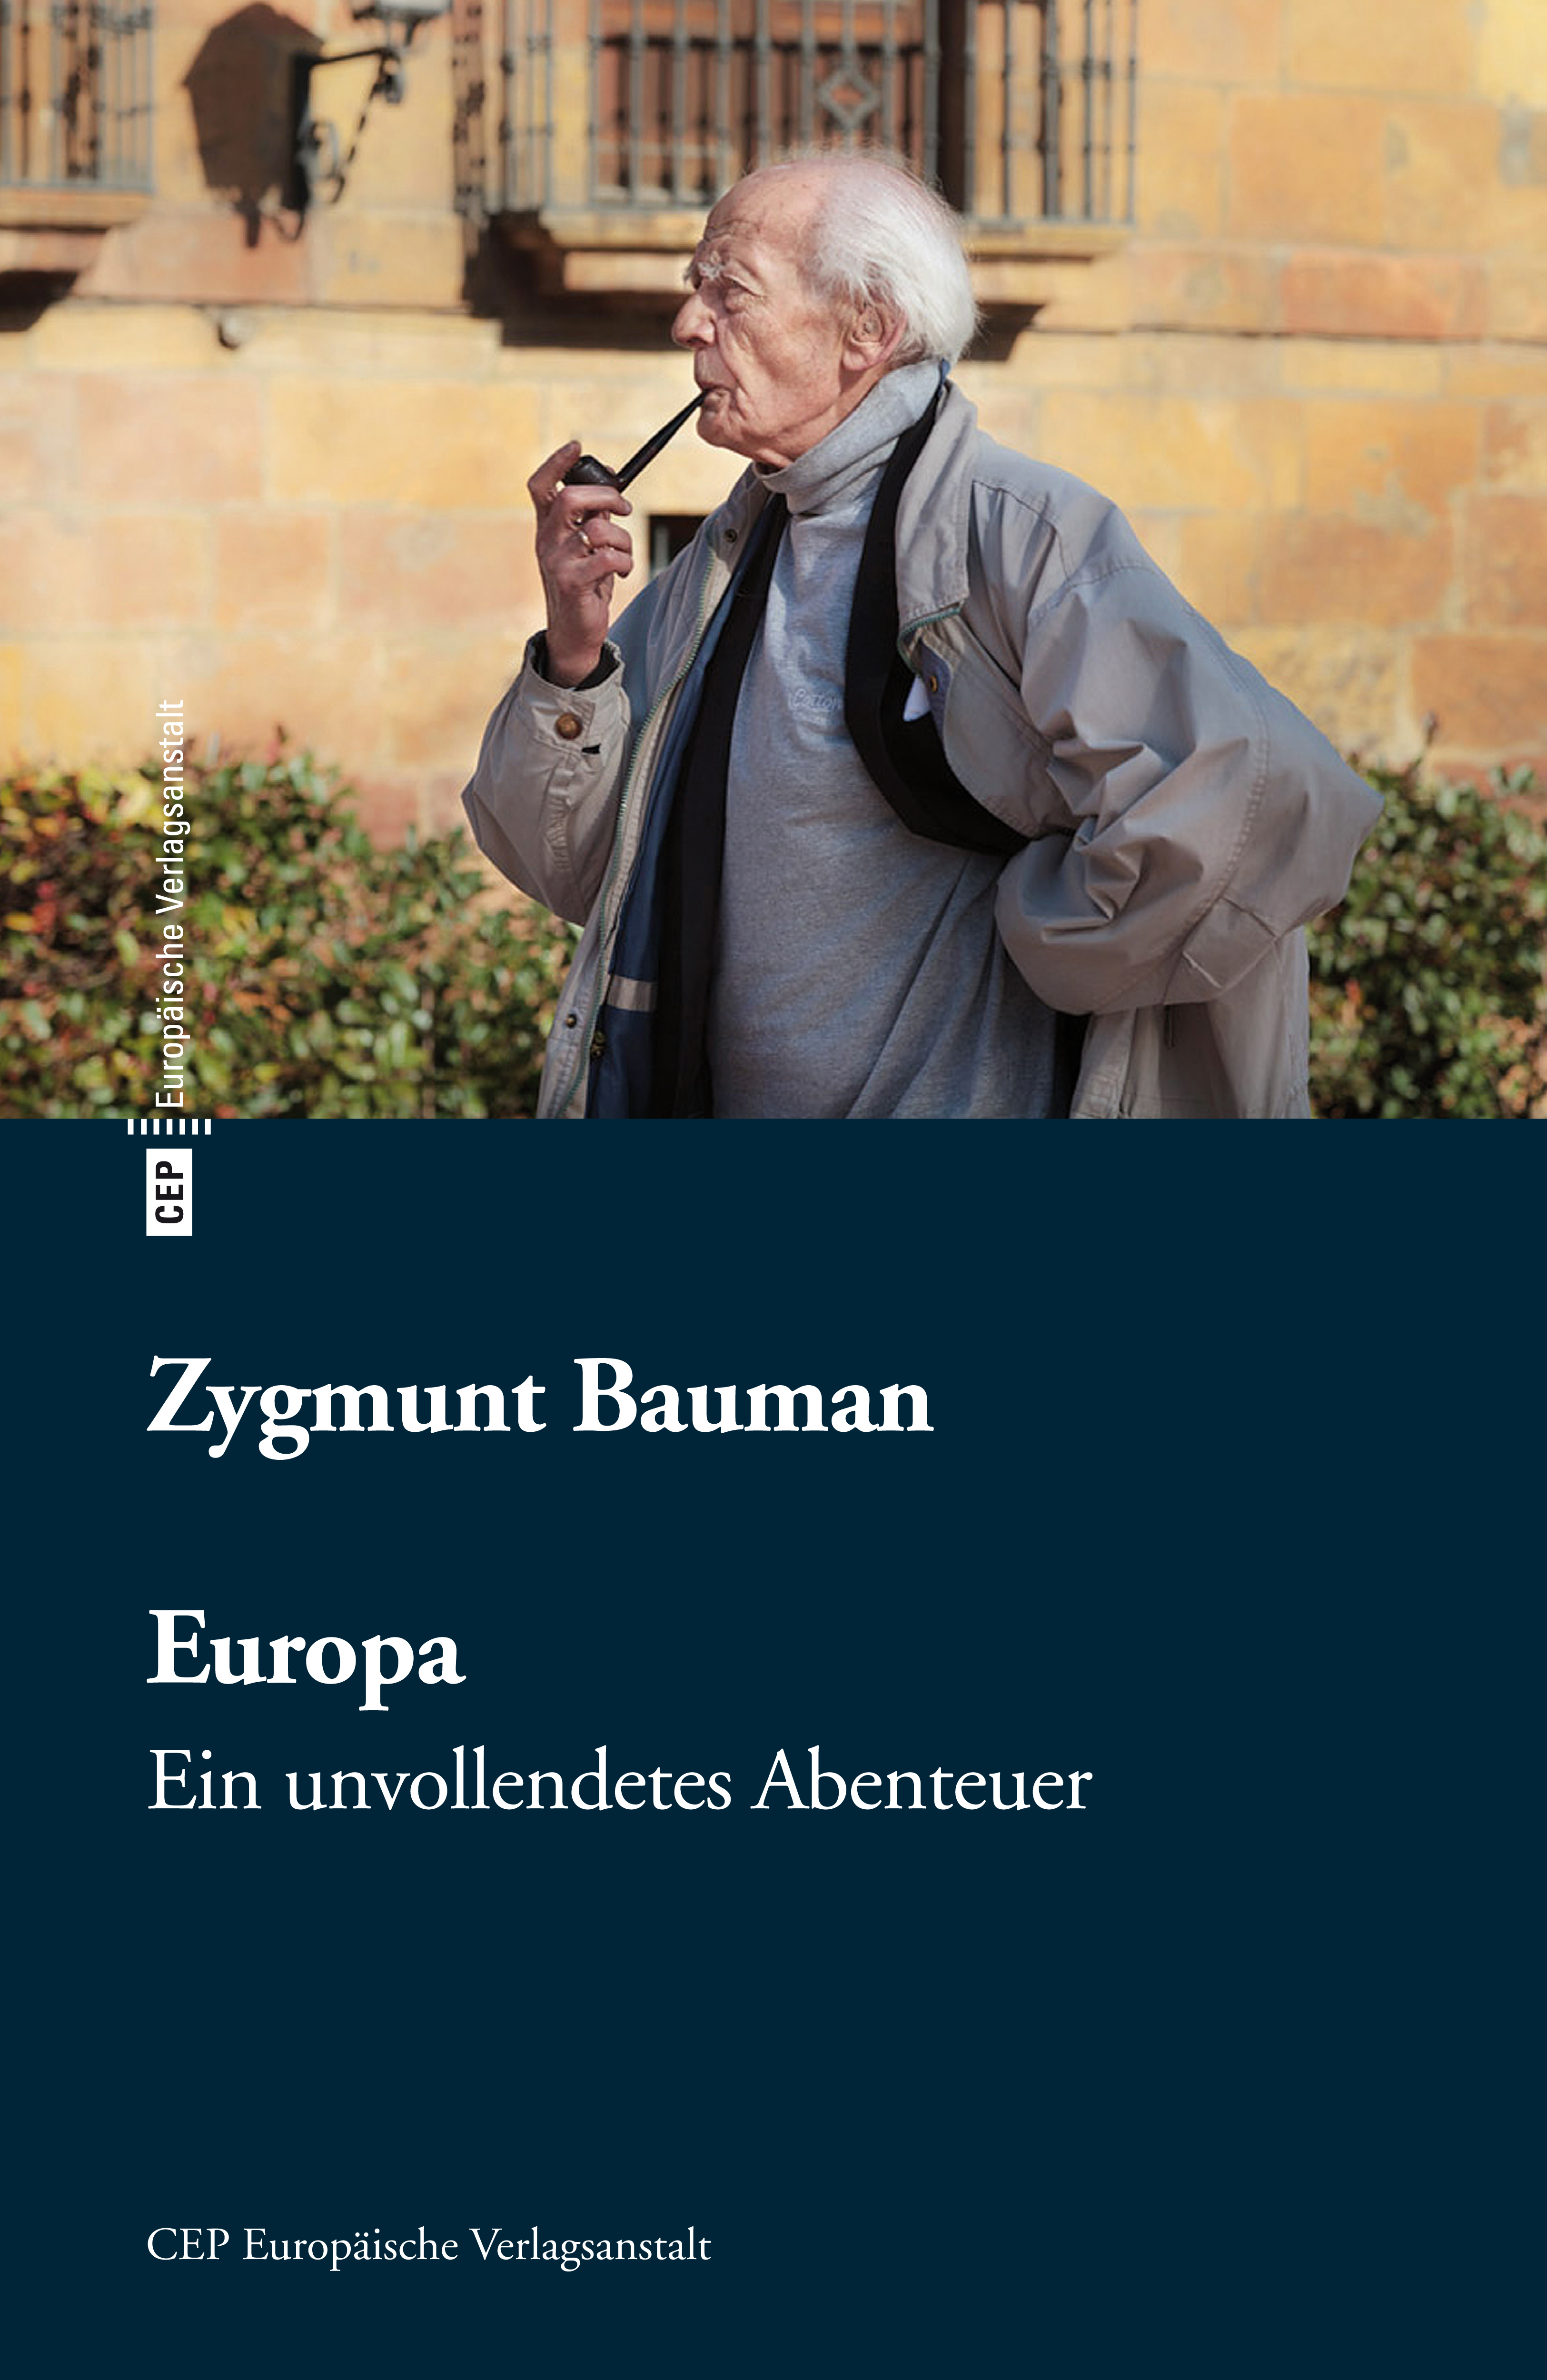 Zygmunt Bauman Europa zygmunt bauman collateral damage social inequalities in a global age